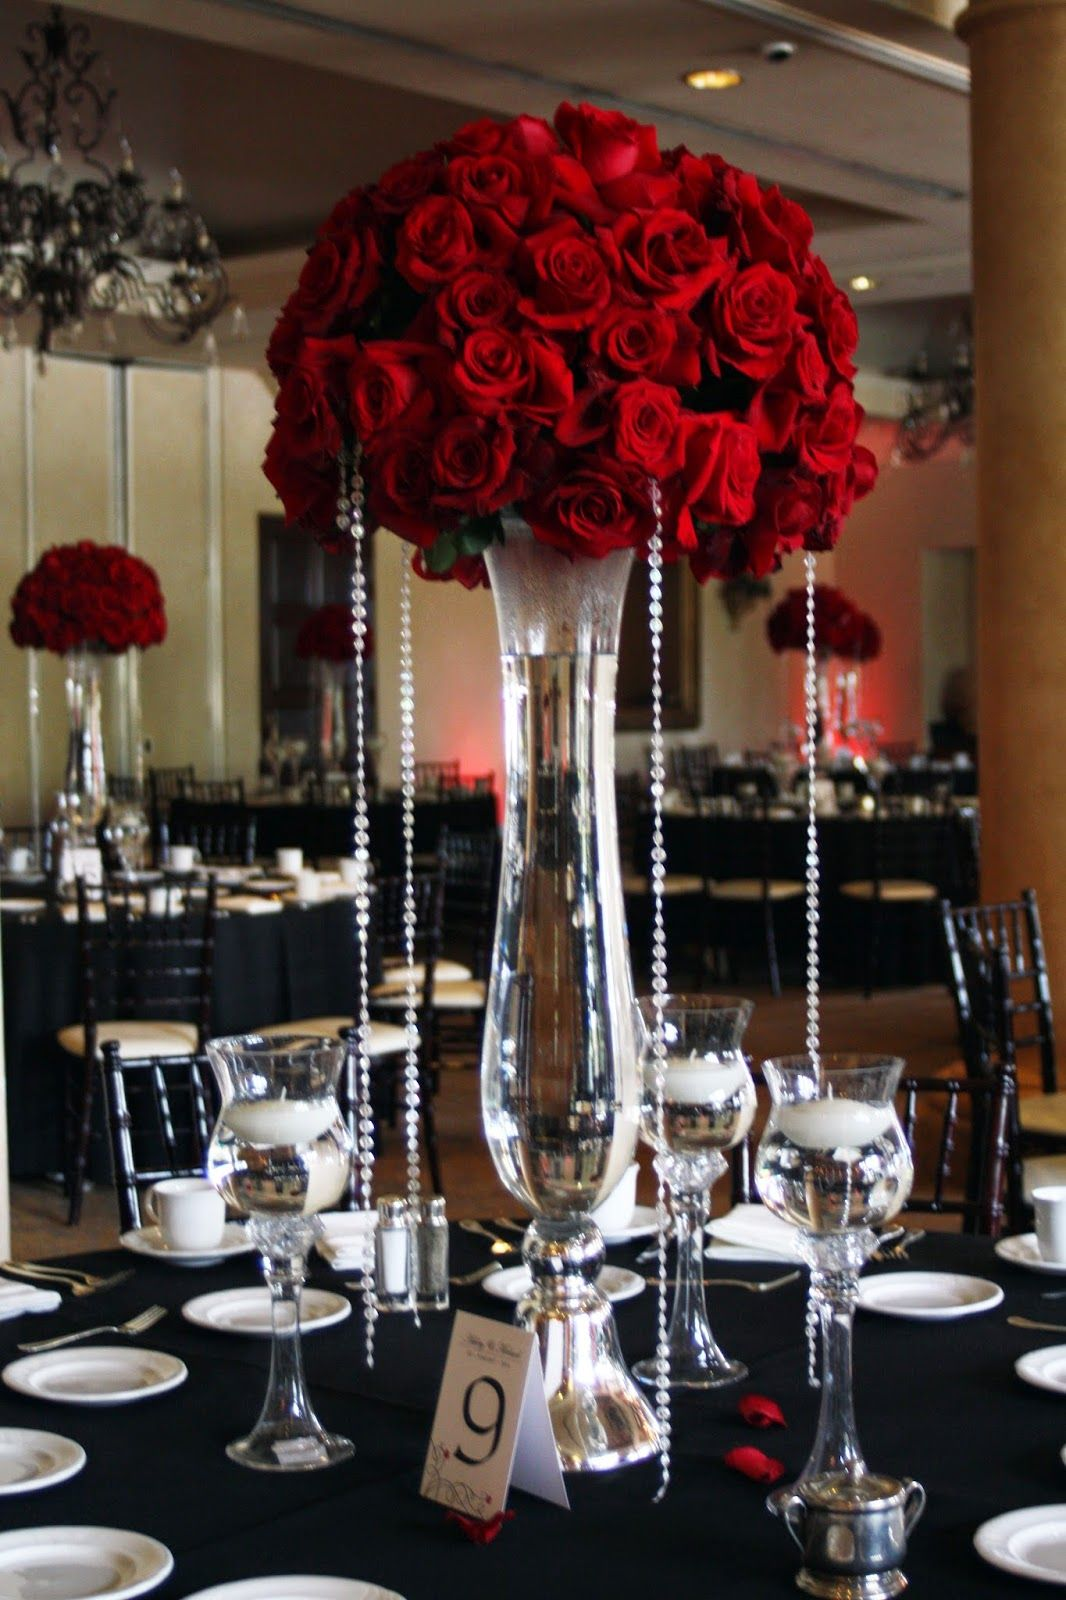 tall red rose wedding centerpieces | Beautiful red rose centerpieces ...